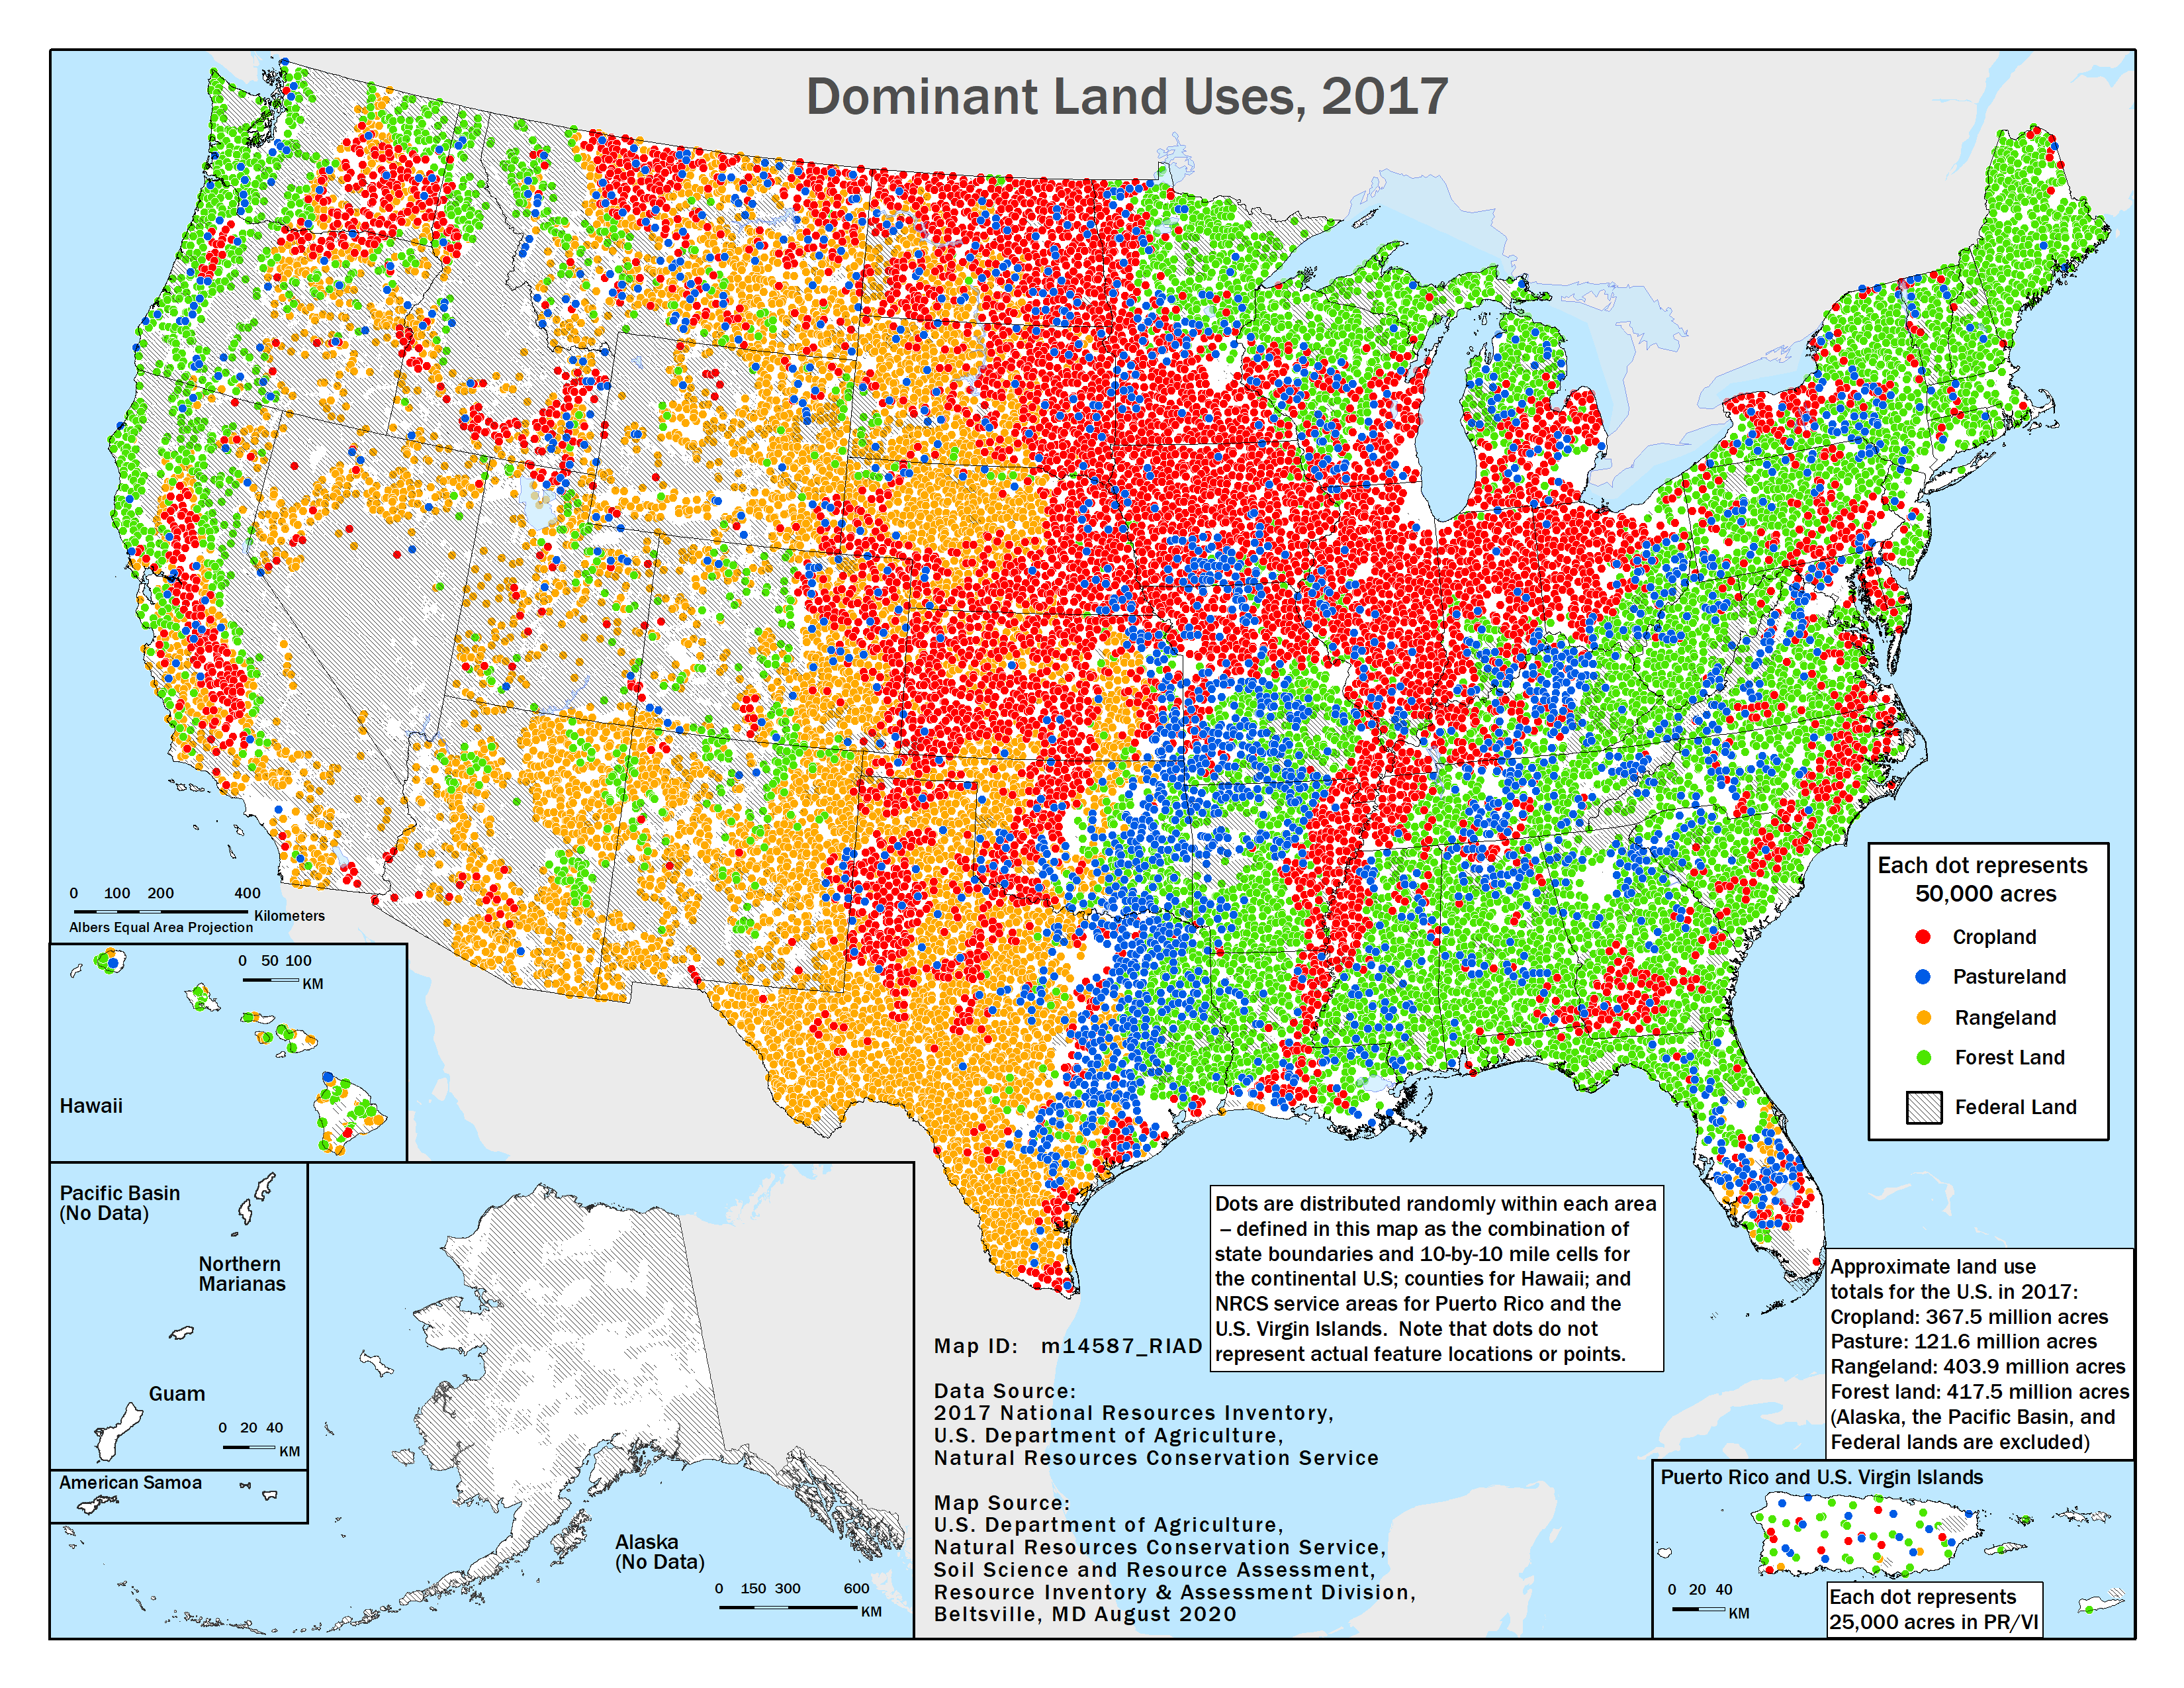 2017 Land Uses map from the 2017 NRI Release